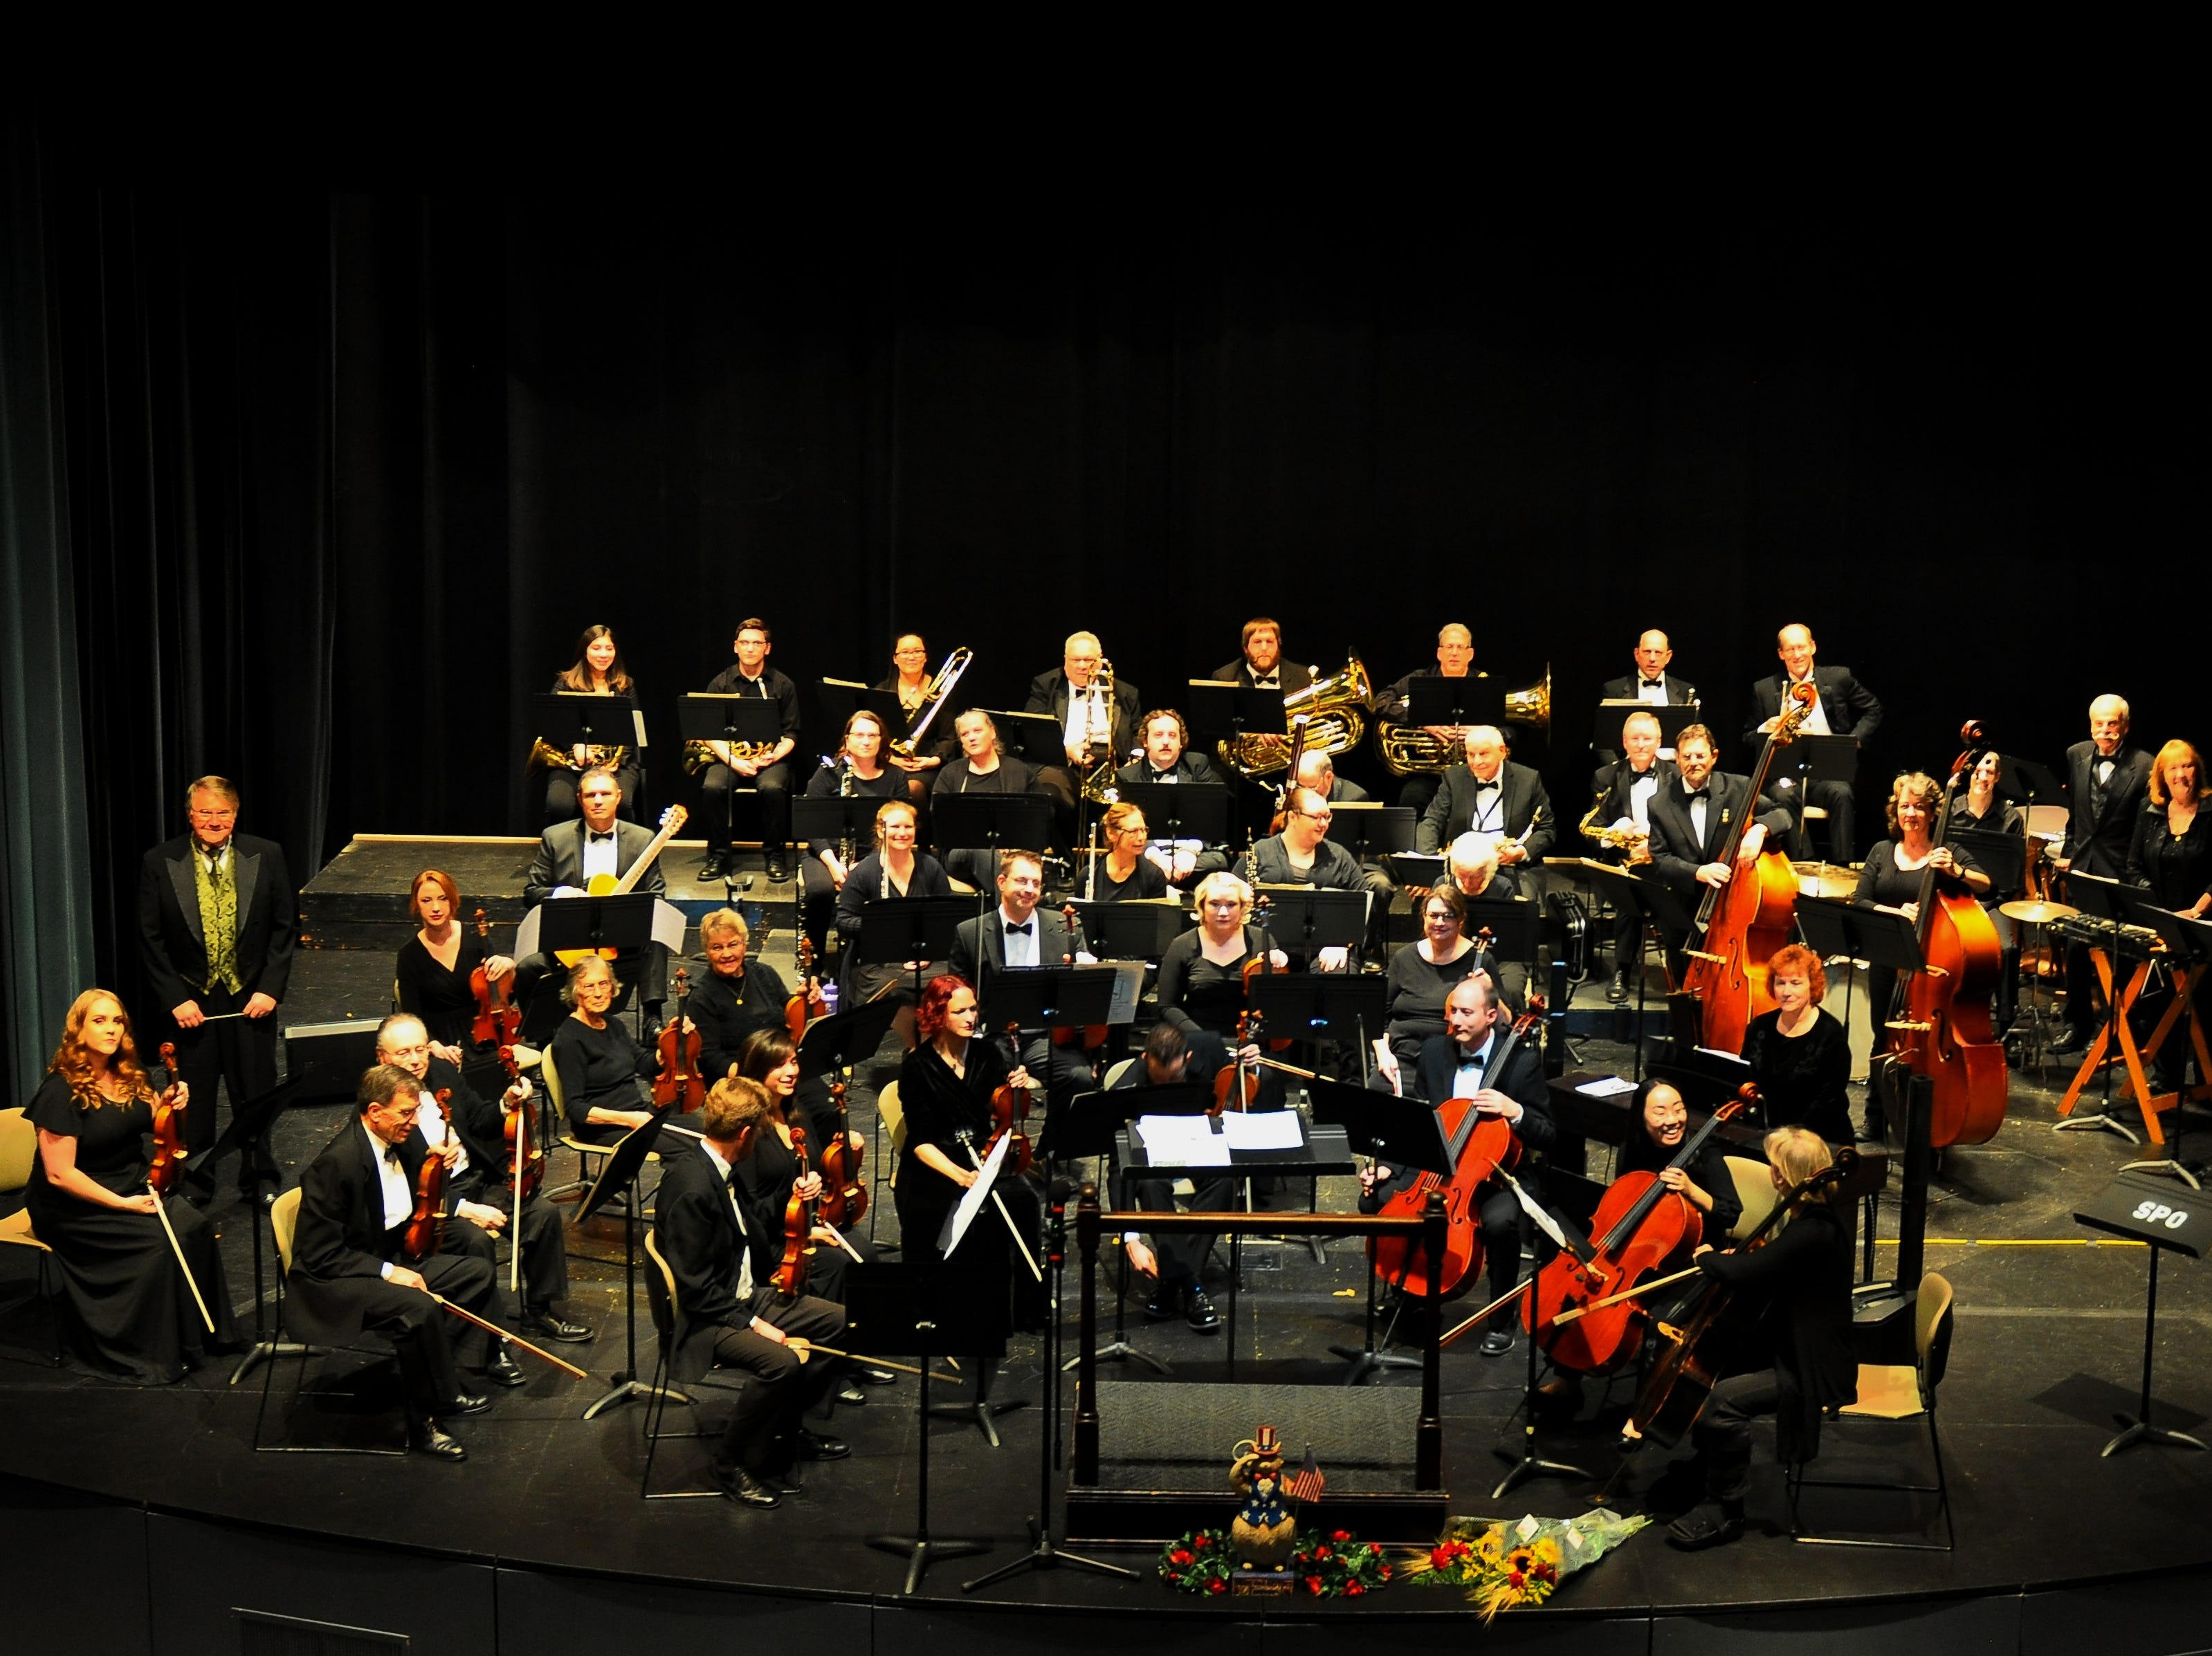 """Salem Pops Orchestra:""""Springtime With The Pops! Music Fresh and Fabulous"""" live performance, 3 p.m. Sunday, May 19,Chemeketa Community College, Building 6 auditorium,6 E Campus Loop. $15 general admission, $5 students and $2 for ages 5and younger.www.salempopsorchestra.org."""